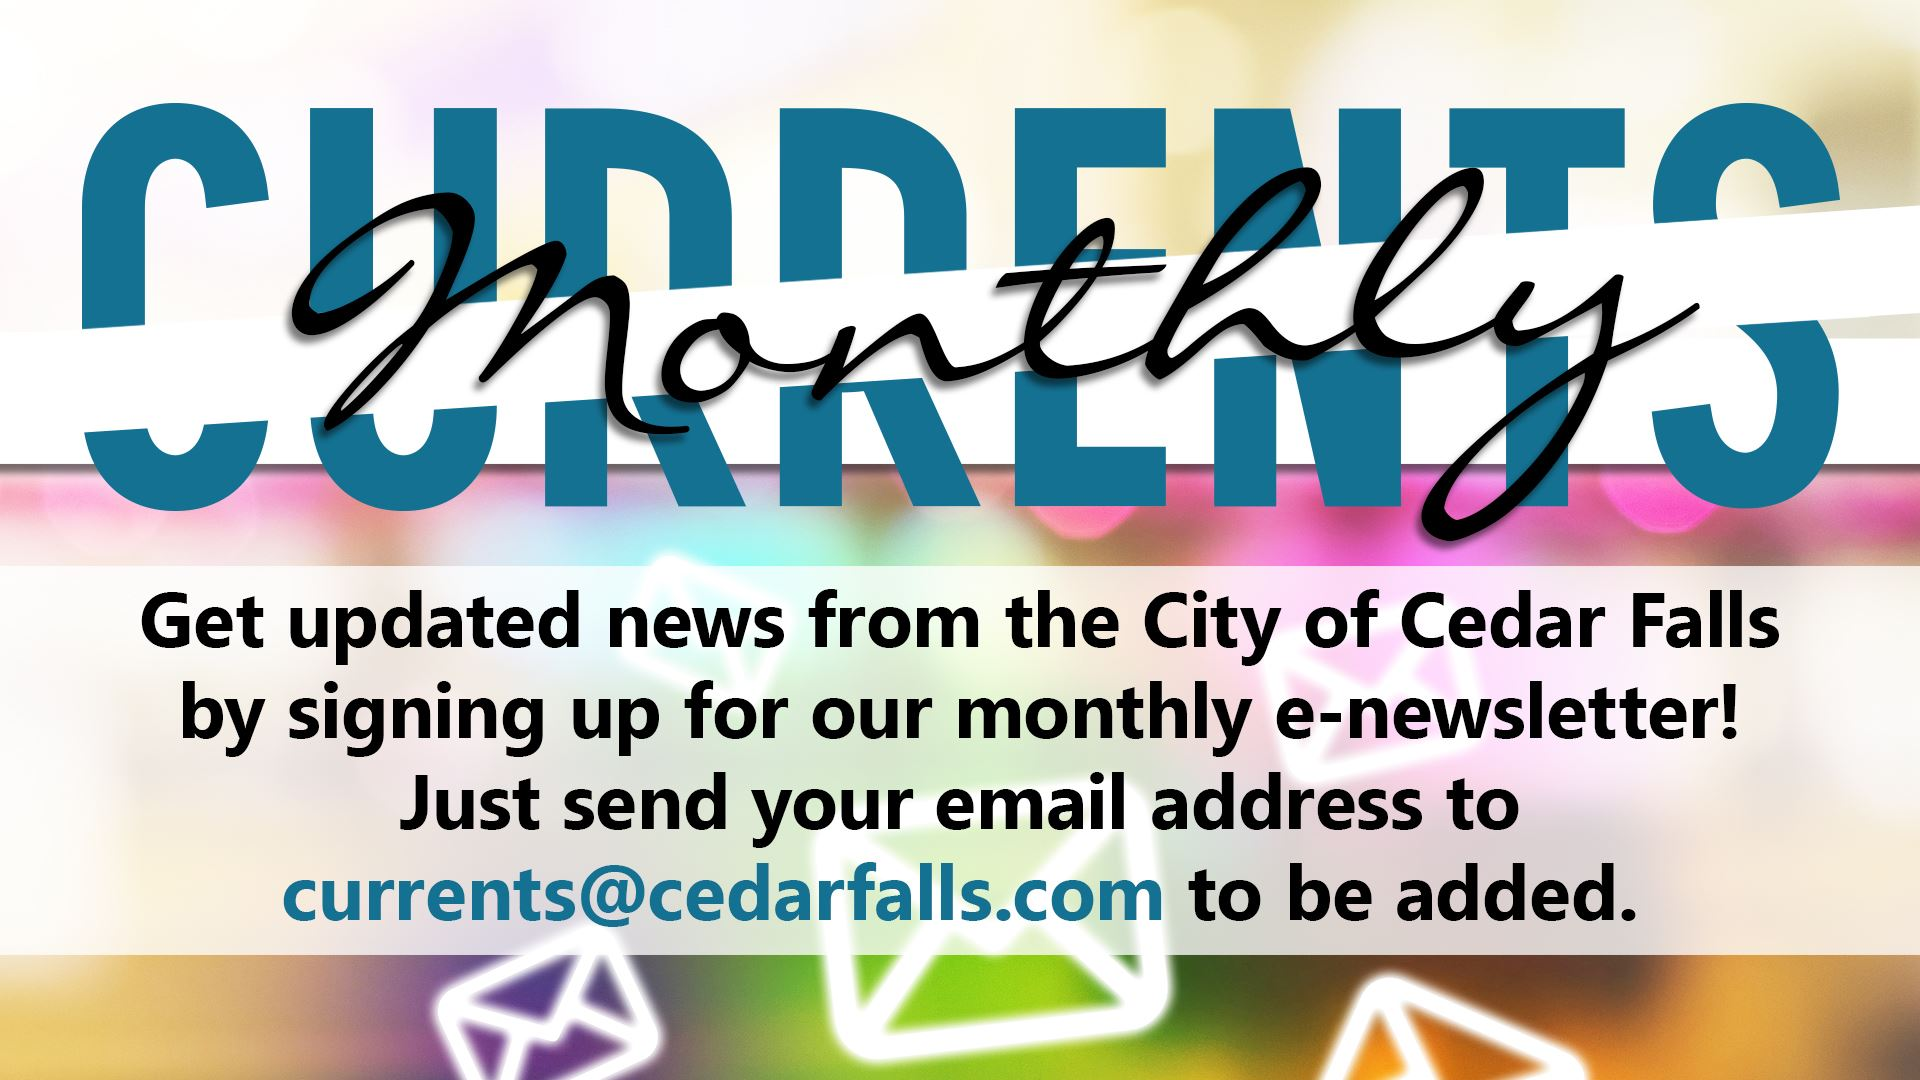 email currents@cedarfalls.com to sign up for the e-newsletter